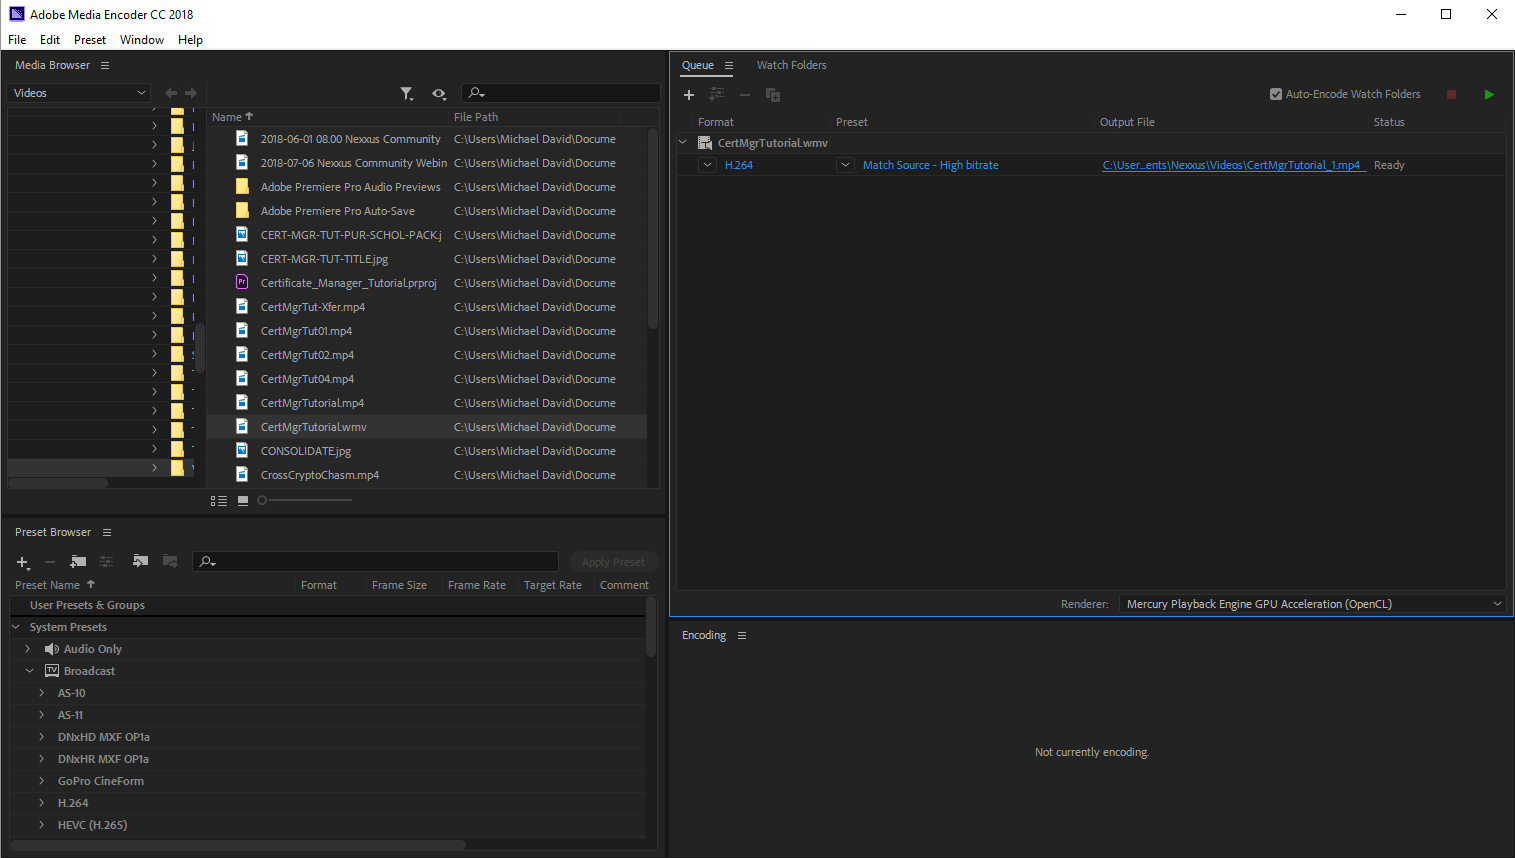 Solved: Exported mp4 files from Premiere Pro CC 12 0 will